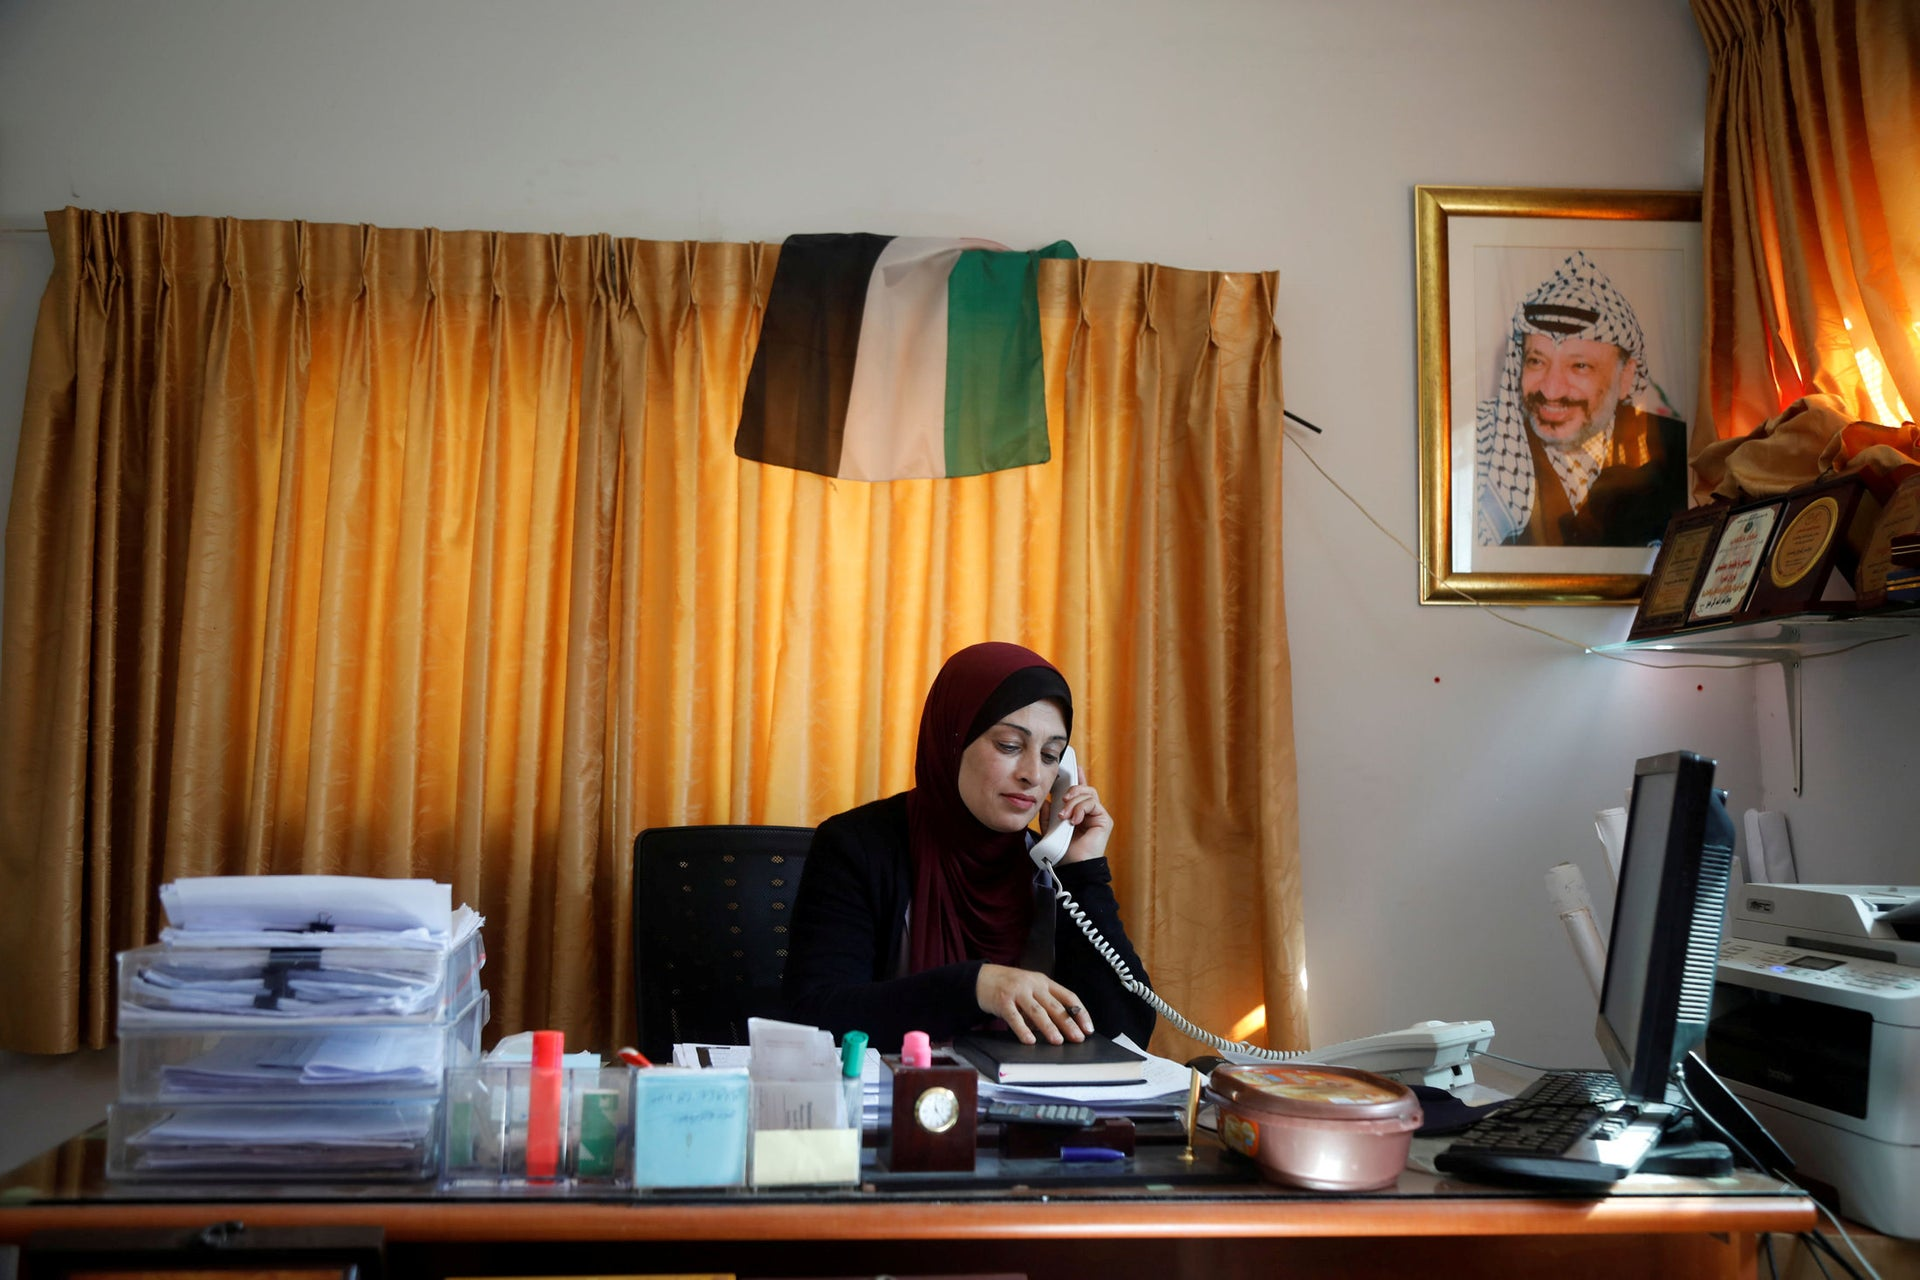 alestinian woman Bothena Turabe, 47, speaks on the phone as she works from her home in the village of Sarra near the Jewish settlement of Havat Gilad, in the Israeli-occupied West Bank,